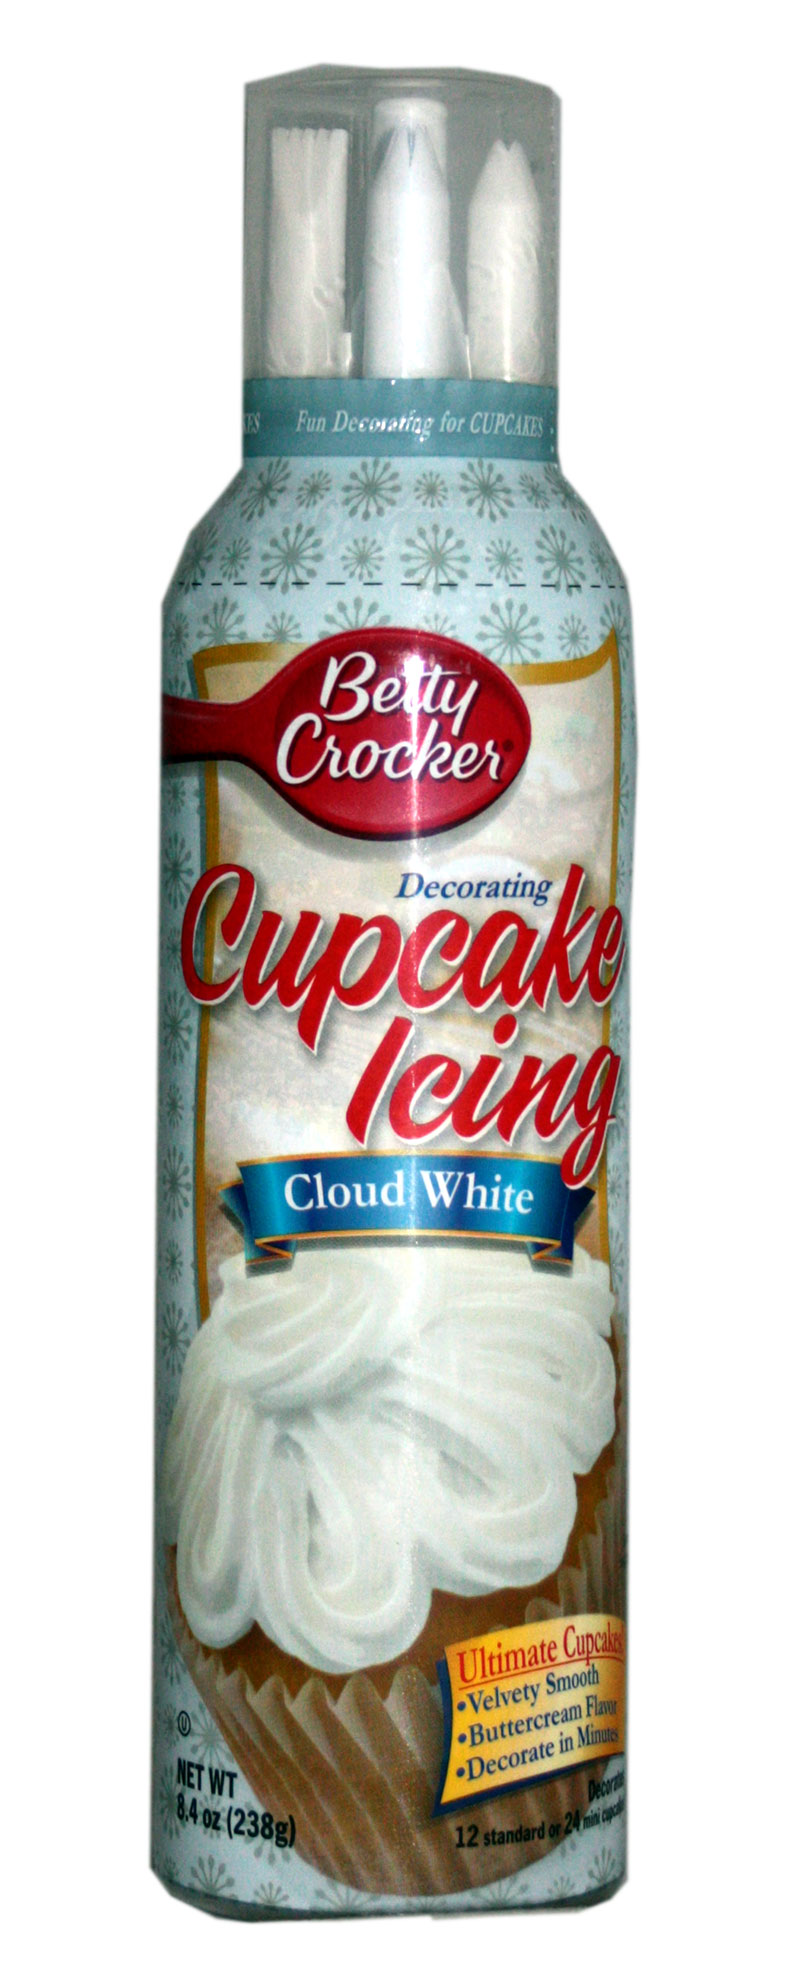 Betty Crocker Cupcake Icing Cloud White